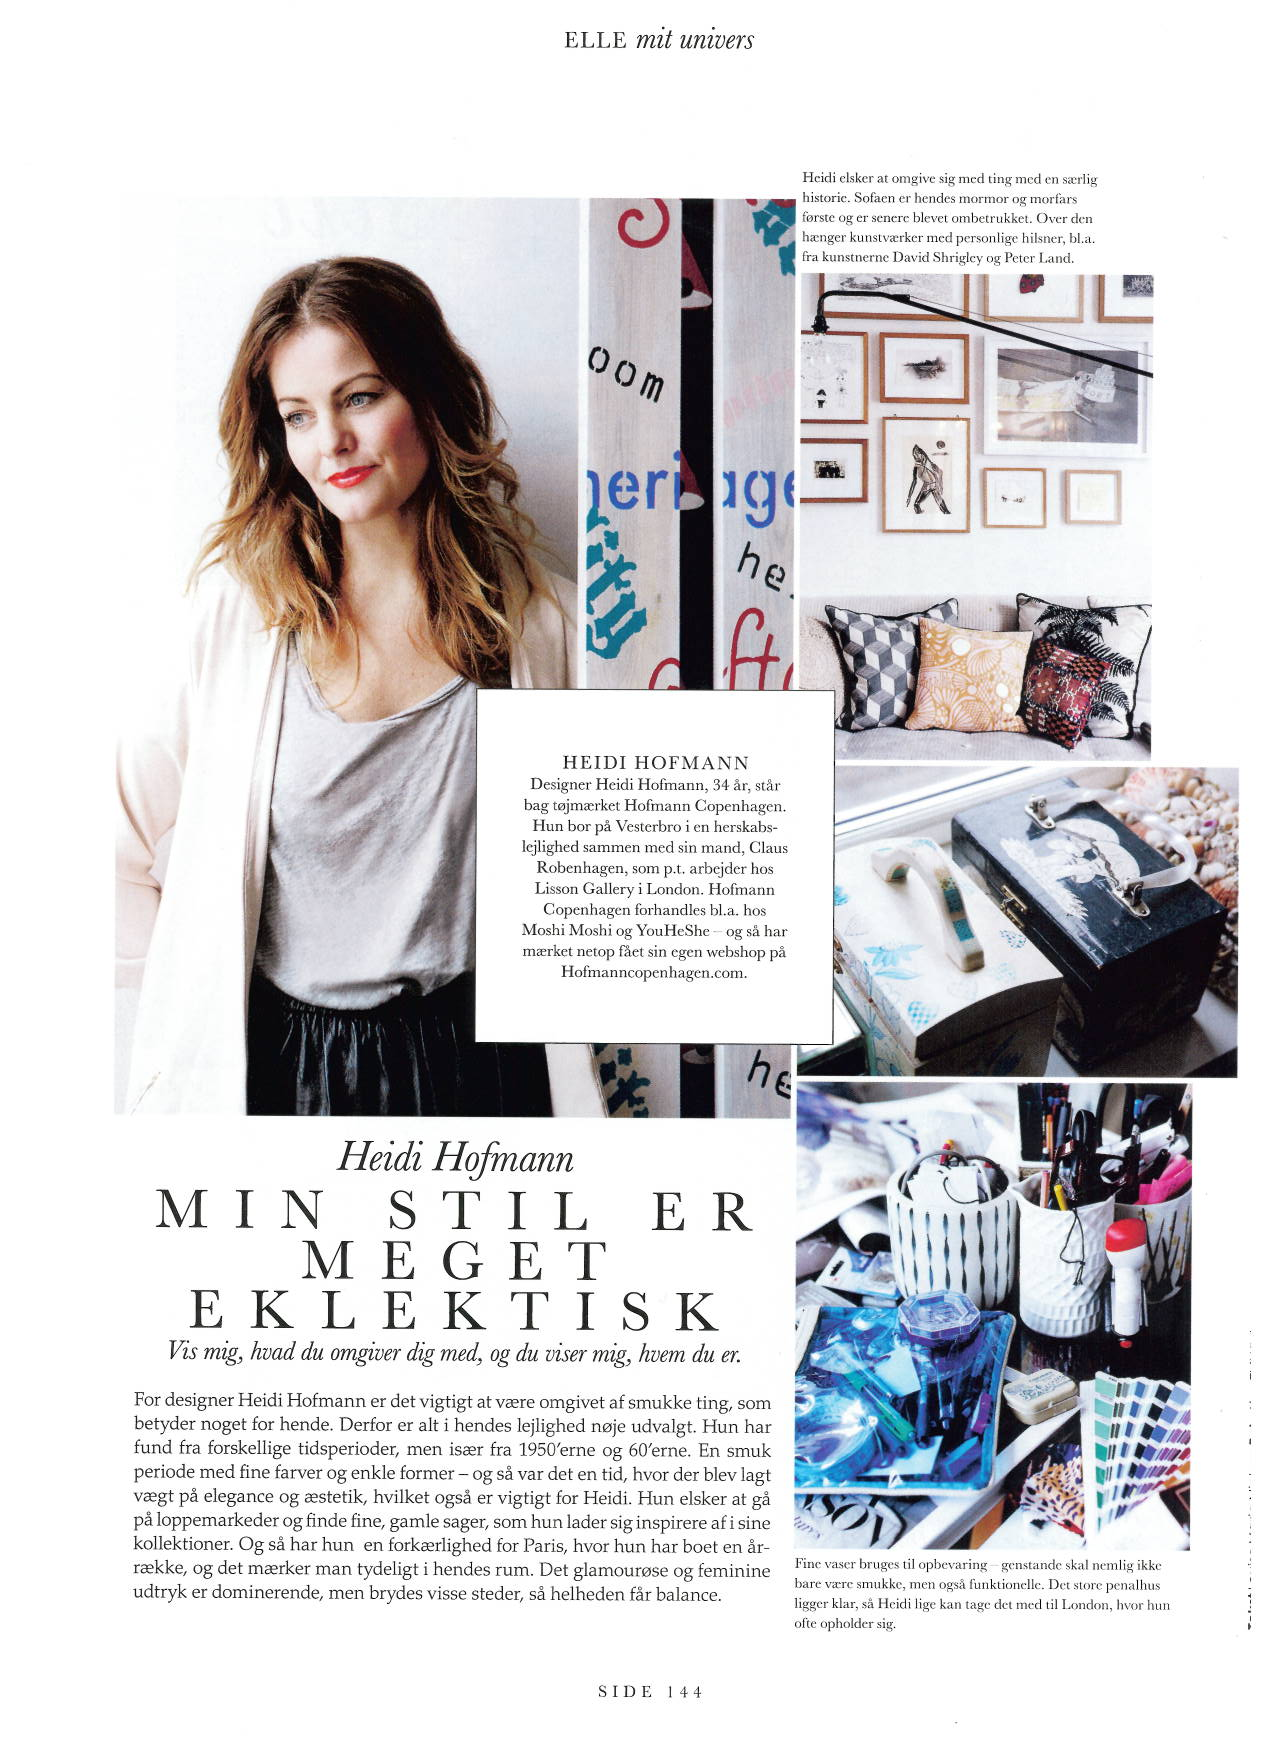 Heidi Hofmann is featured ELLE DK, April 2013